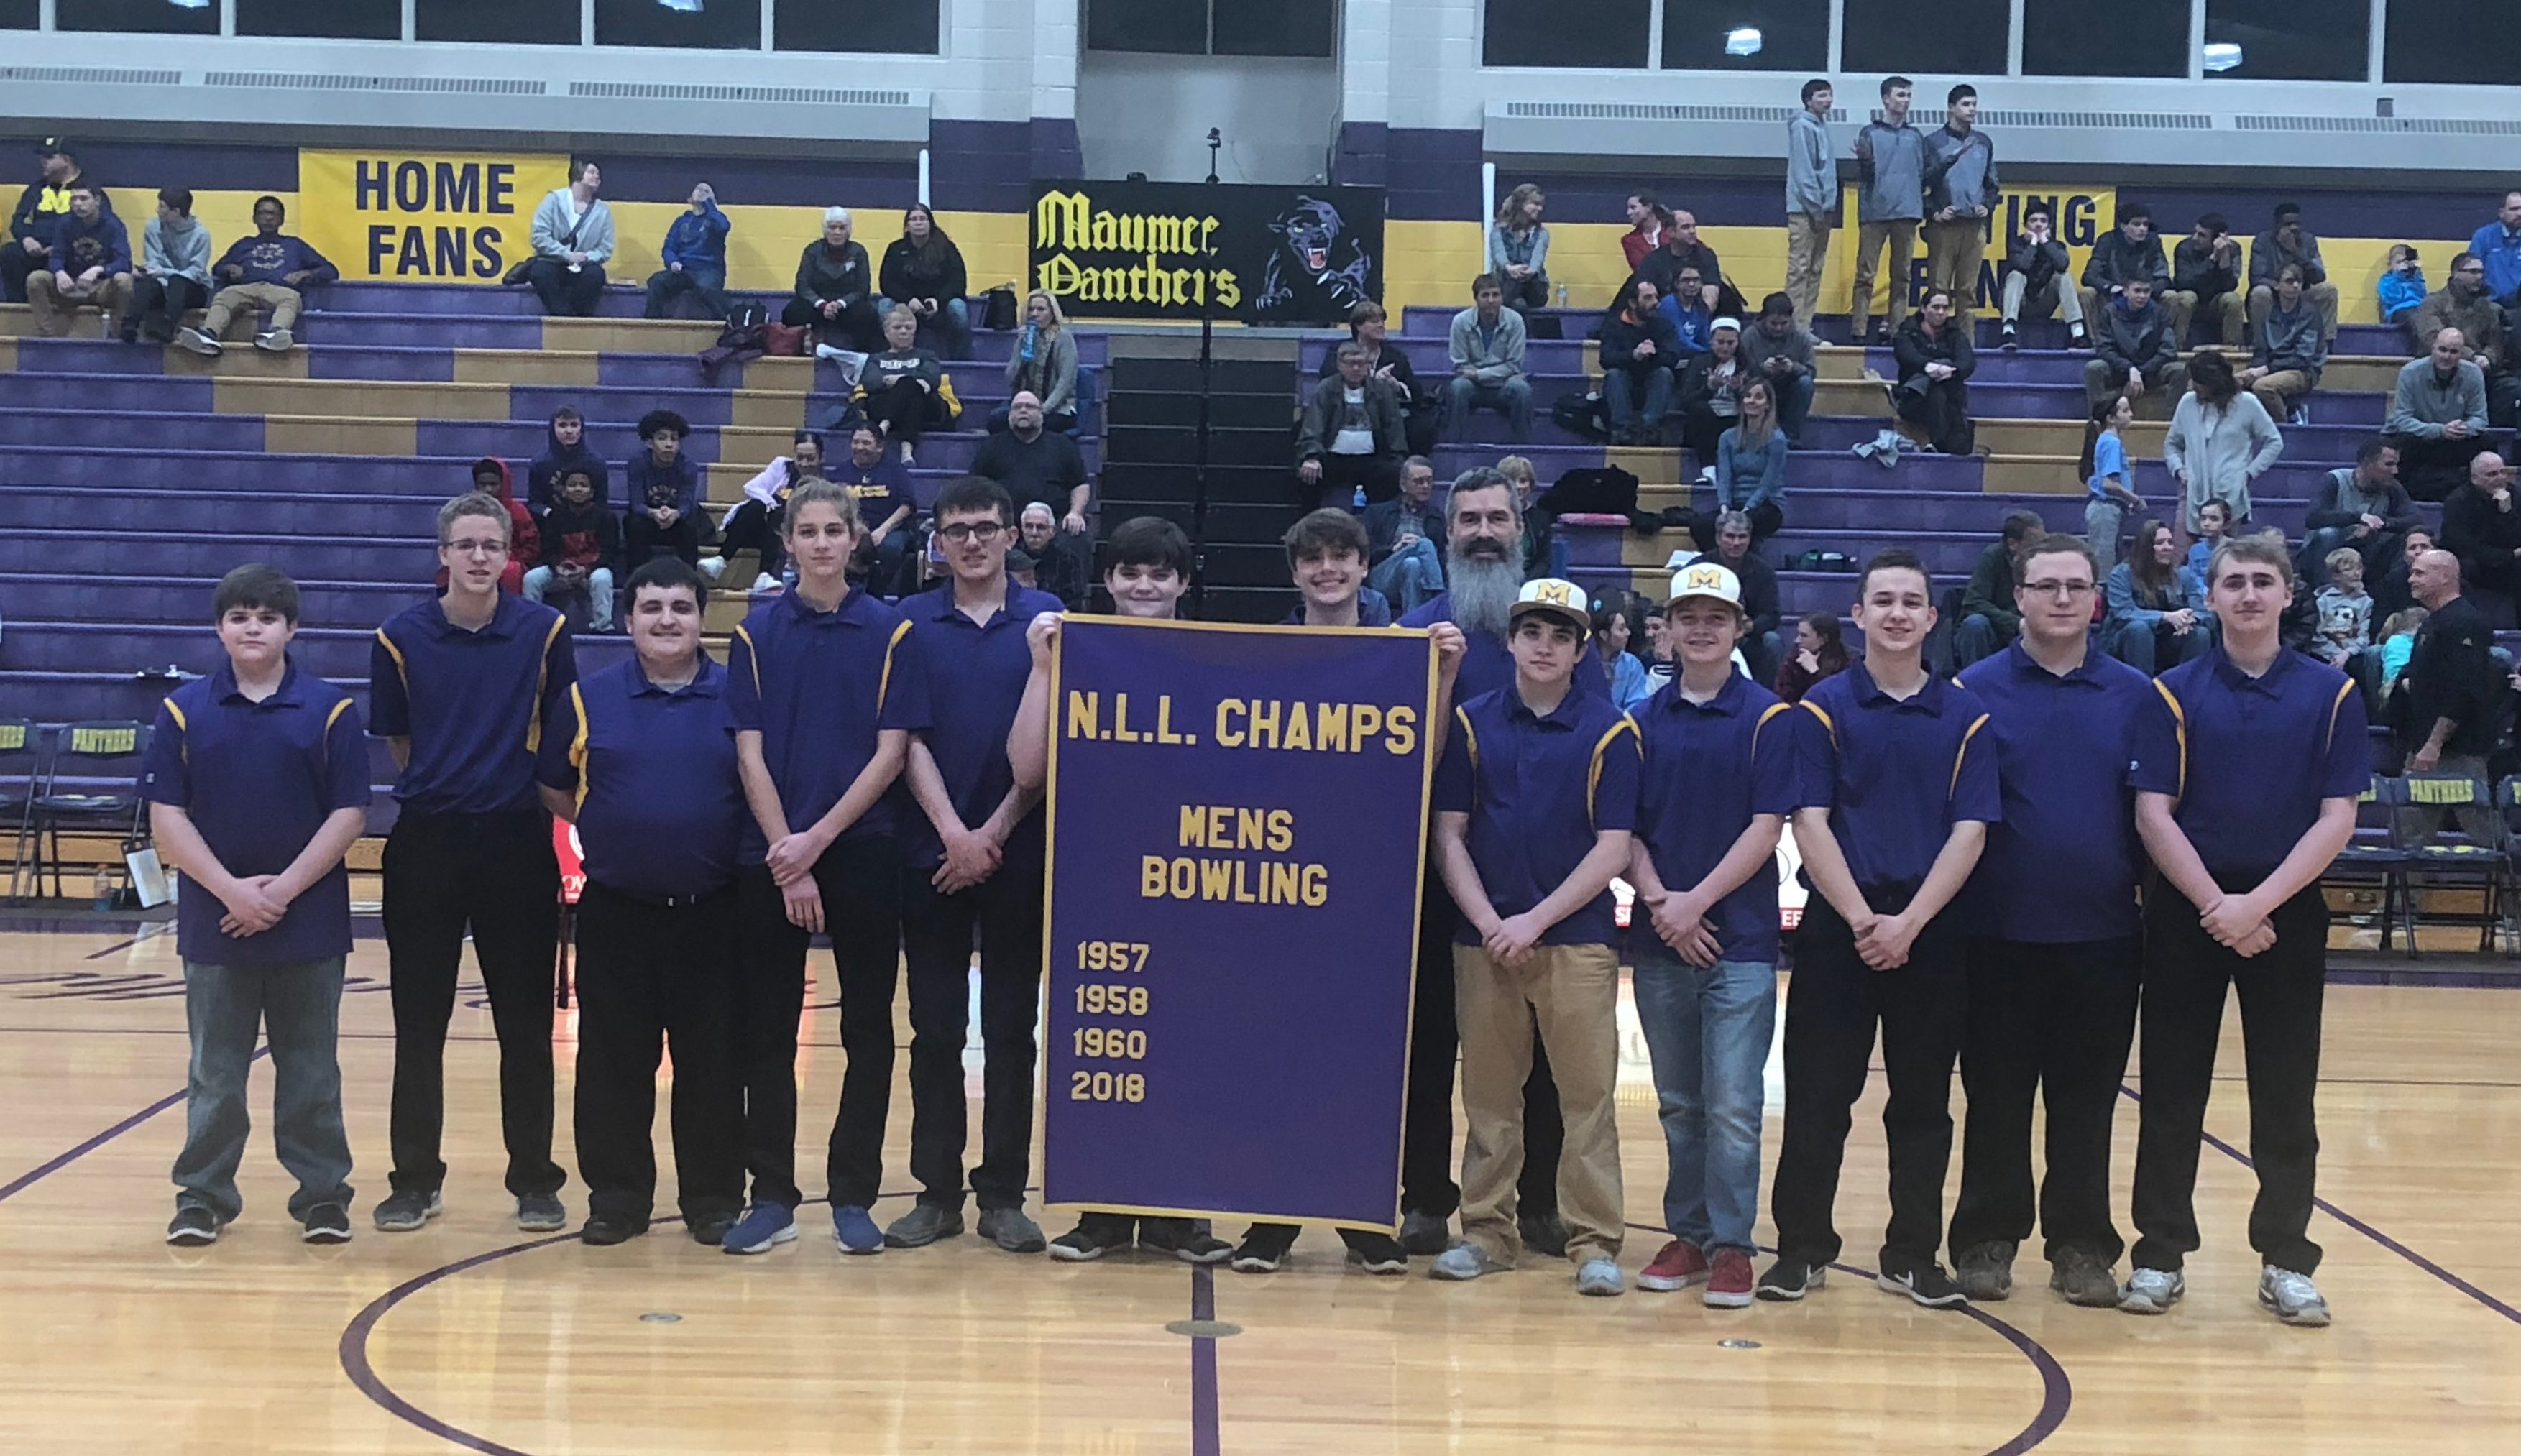 2018 Bowling Team Earns Banner